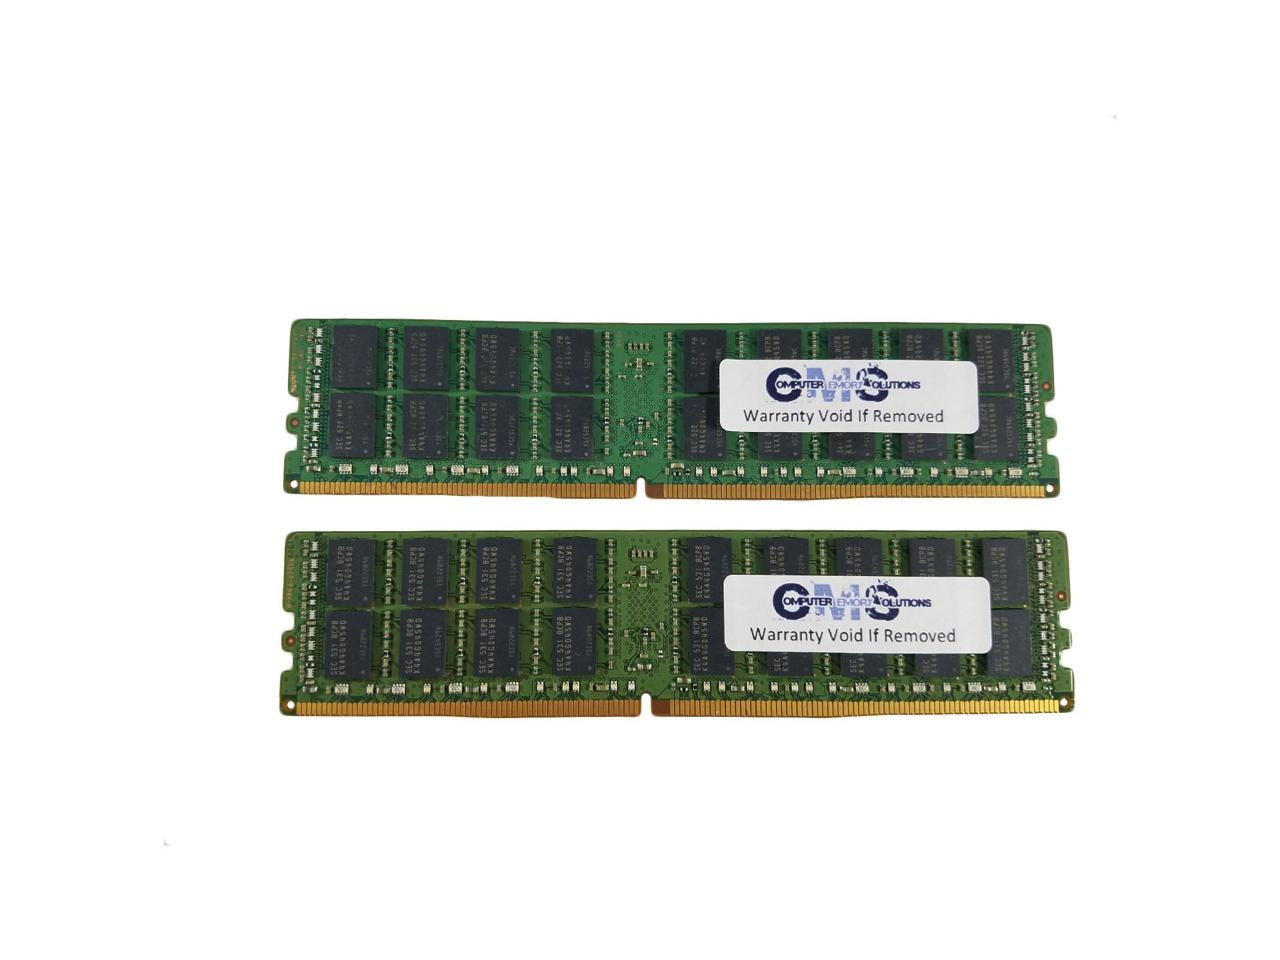 64GB Memory Ram Compatible with Supermicro Processor Blade SBI-7128R-C6 SBI-7228R-T2F only by CMS D16 SBI-7128R-C6N 2X32GB Super B10DRC Super B10DRT-IBF Super B10DRC-N